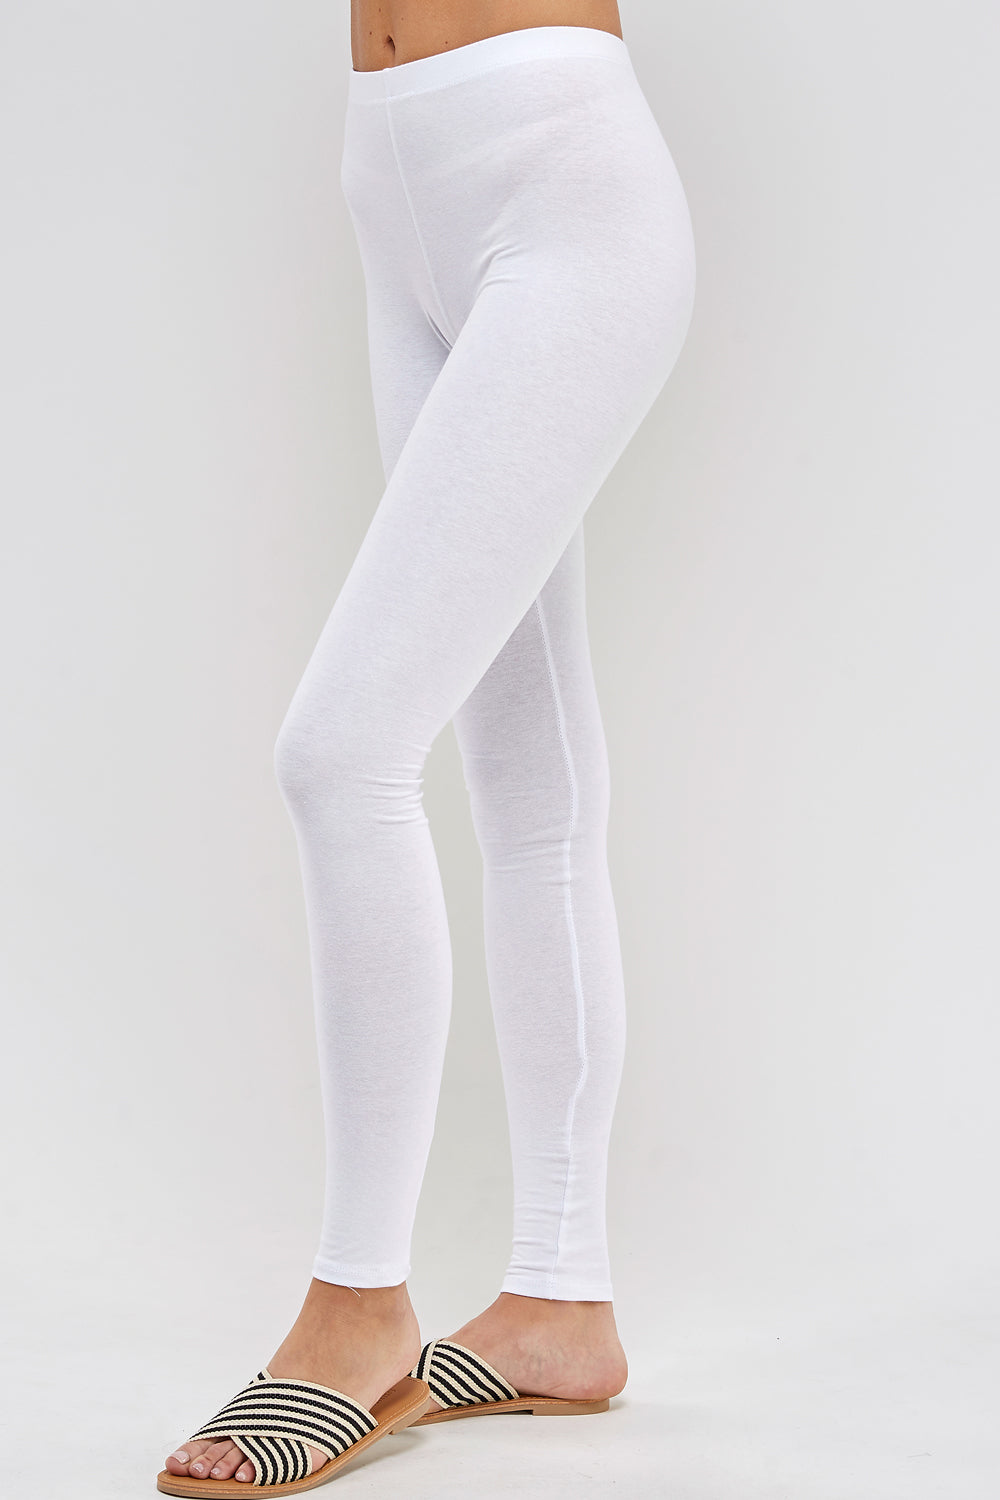 urban x apparel, urban x clothing, urbanxapparel, urbanxclothing, wholesale, women clothing, bohemian, free people, free spirit, young contemporary, fashion trend, fashion style, fashion 2019,RETAIL, Solid Basic Cotton Leggings Active wear Color White, URBAN X APPAREL